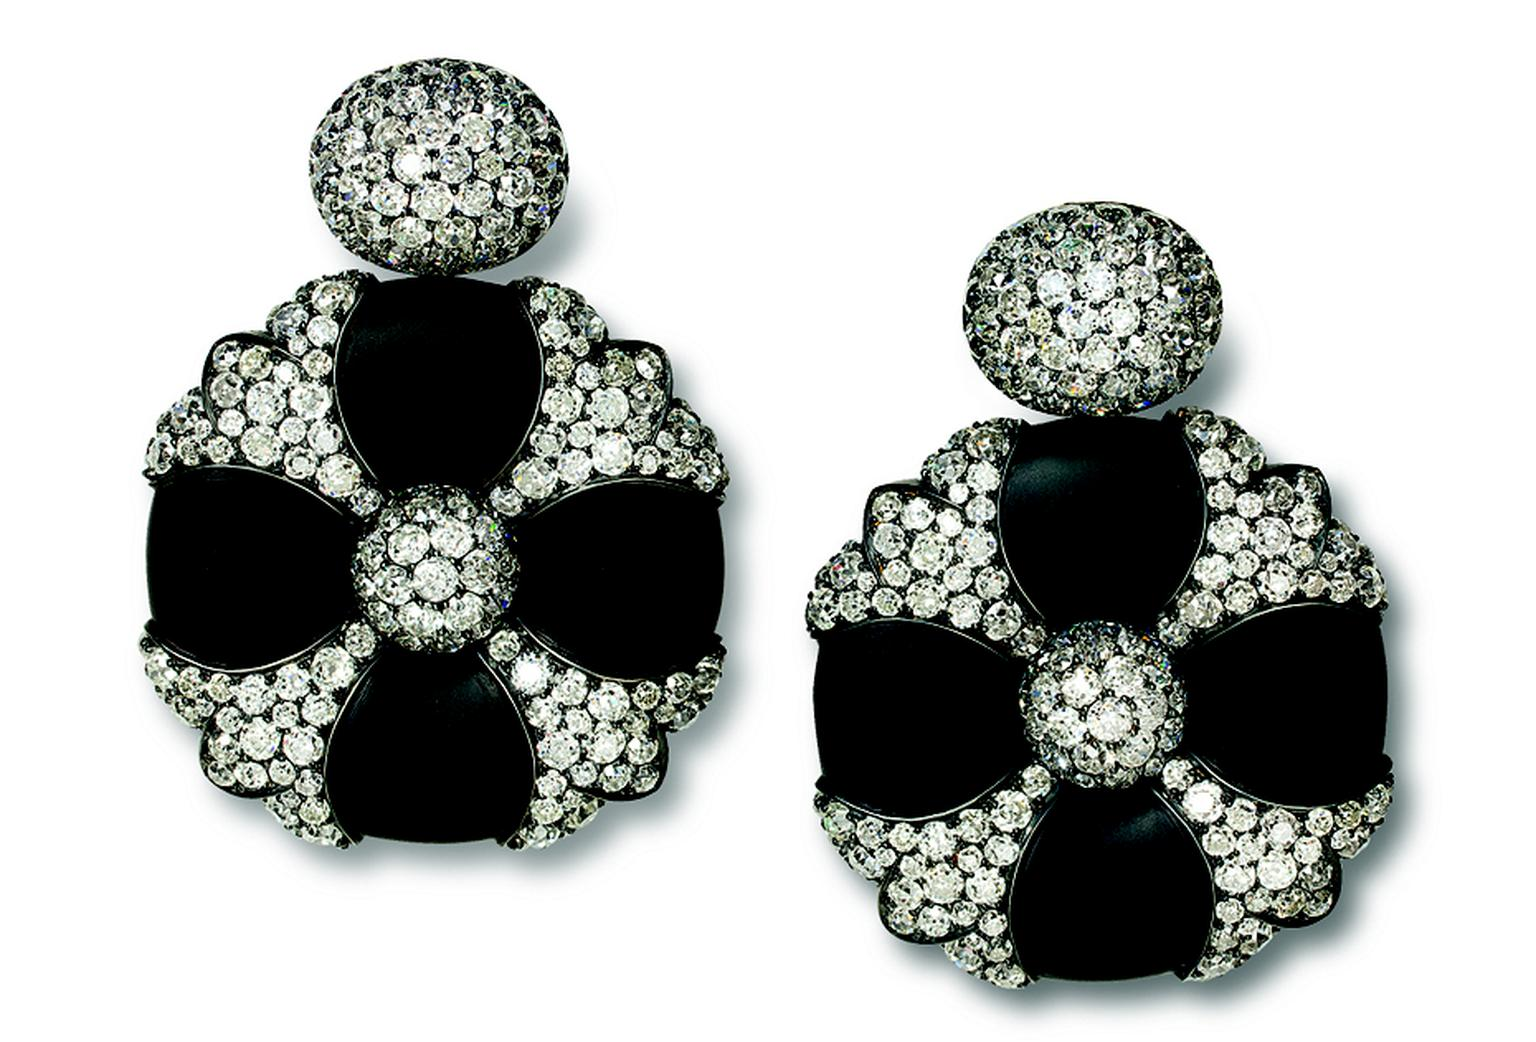 Hemmerle Earrings, iron, silver, white gold, old cut diamonds MAIN PIC.jpg